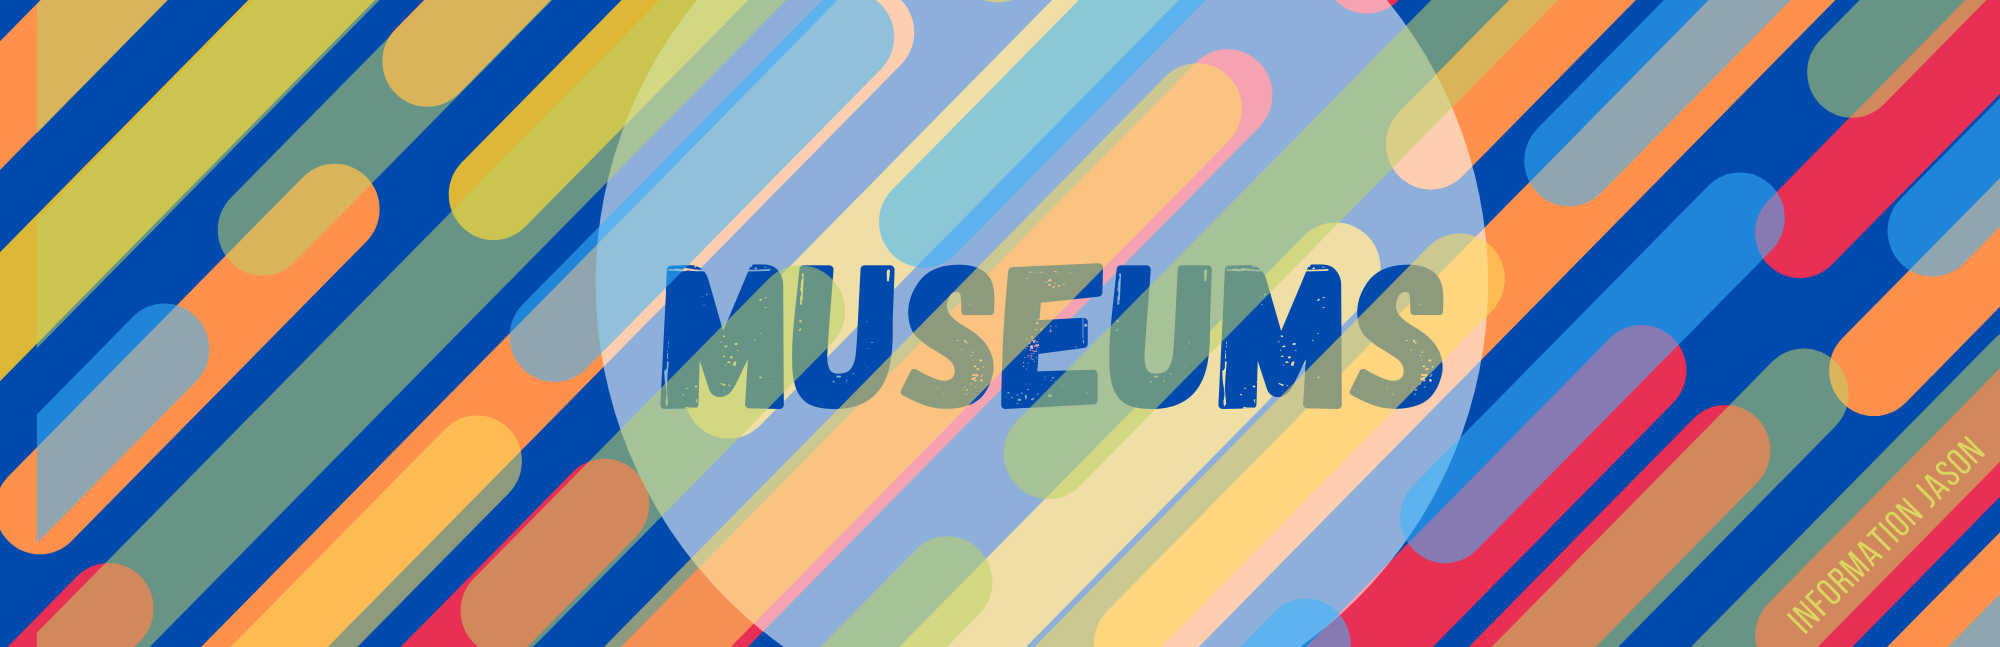 Museums graphic